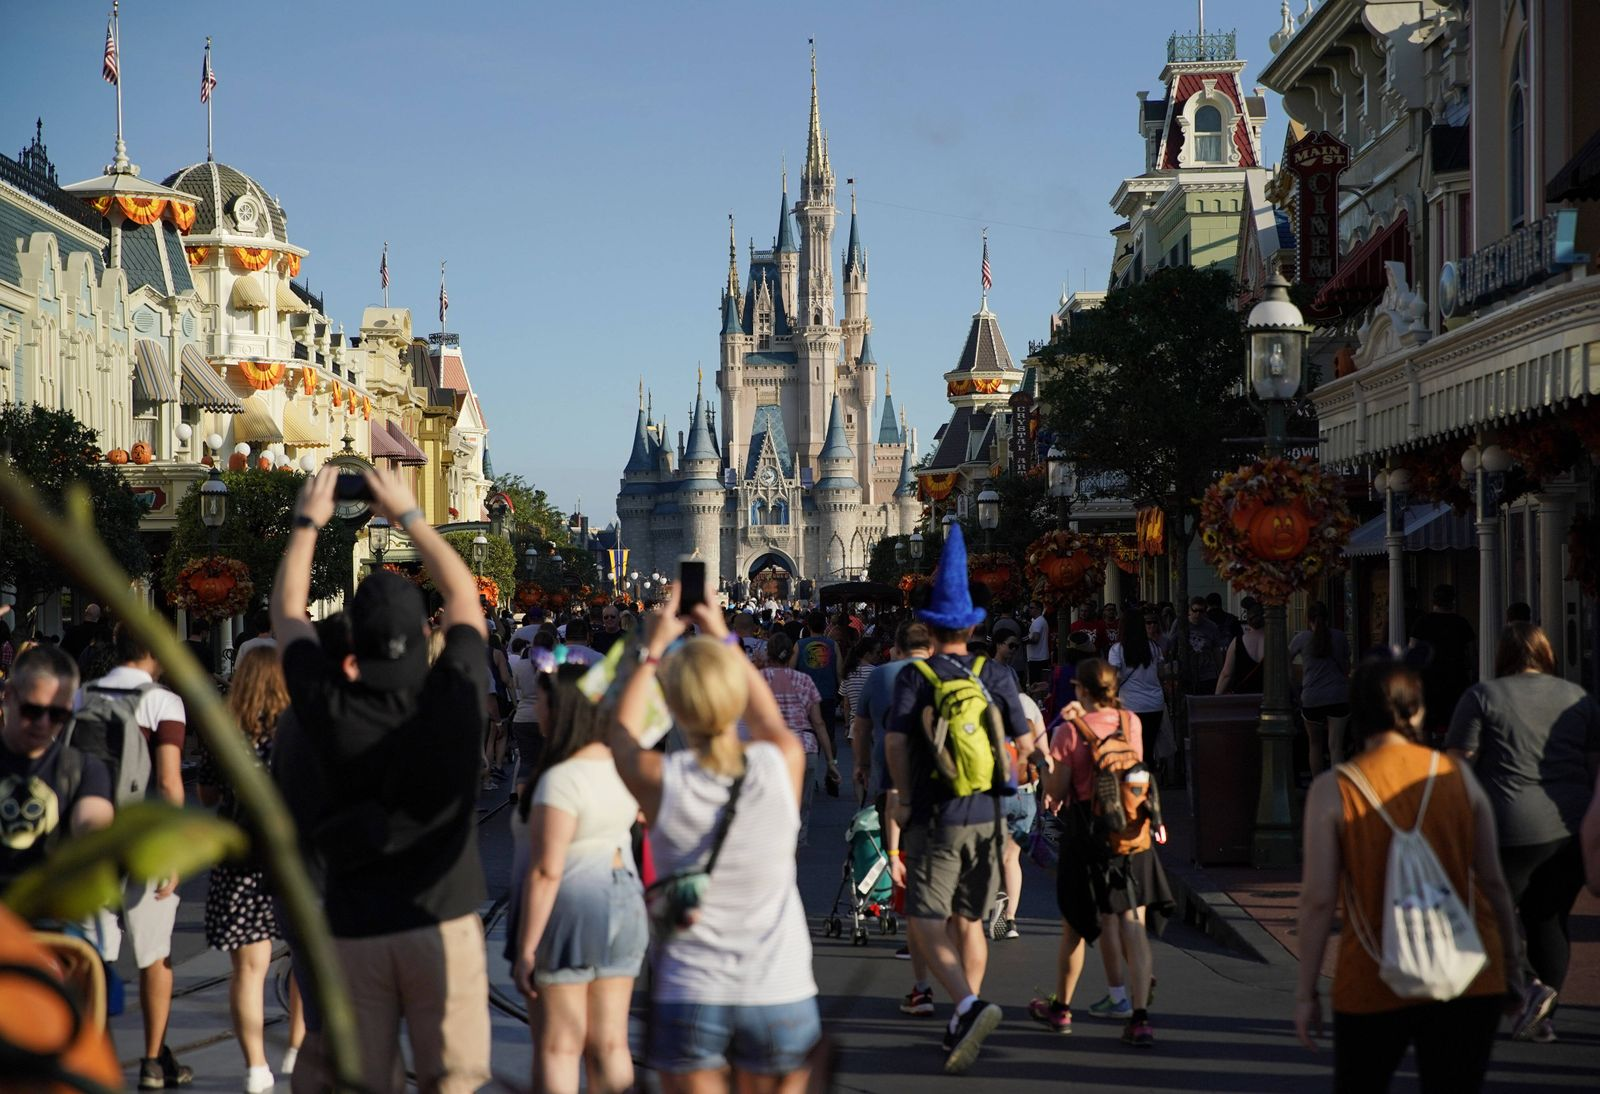 Guests walk near the Magic Kingdom castle at the Walt Disney World theme park and resort on Monday, October 29, 2019 in